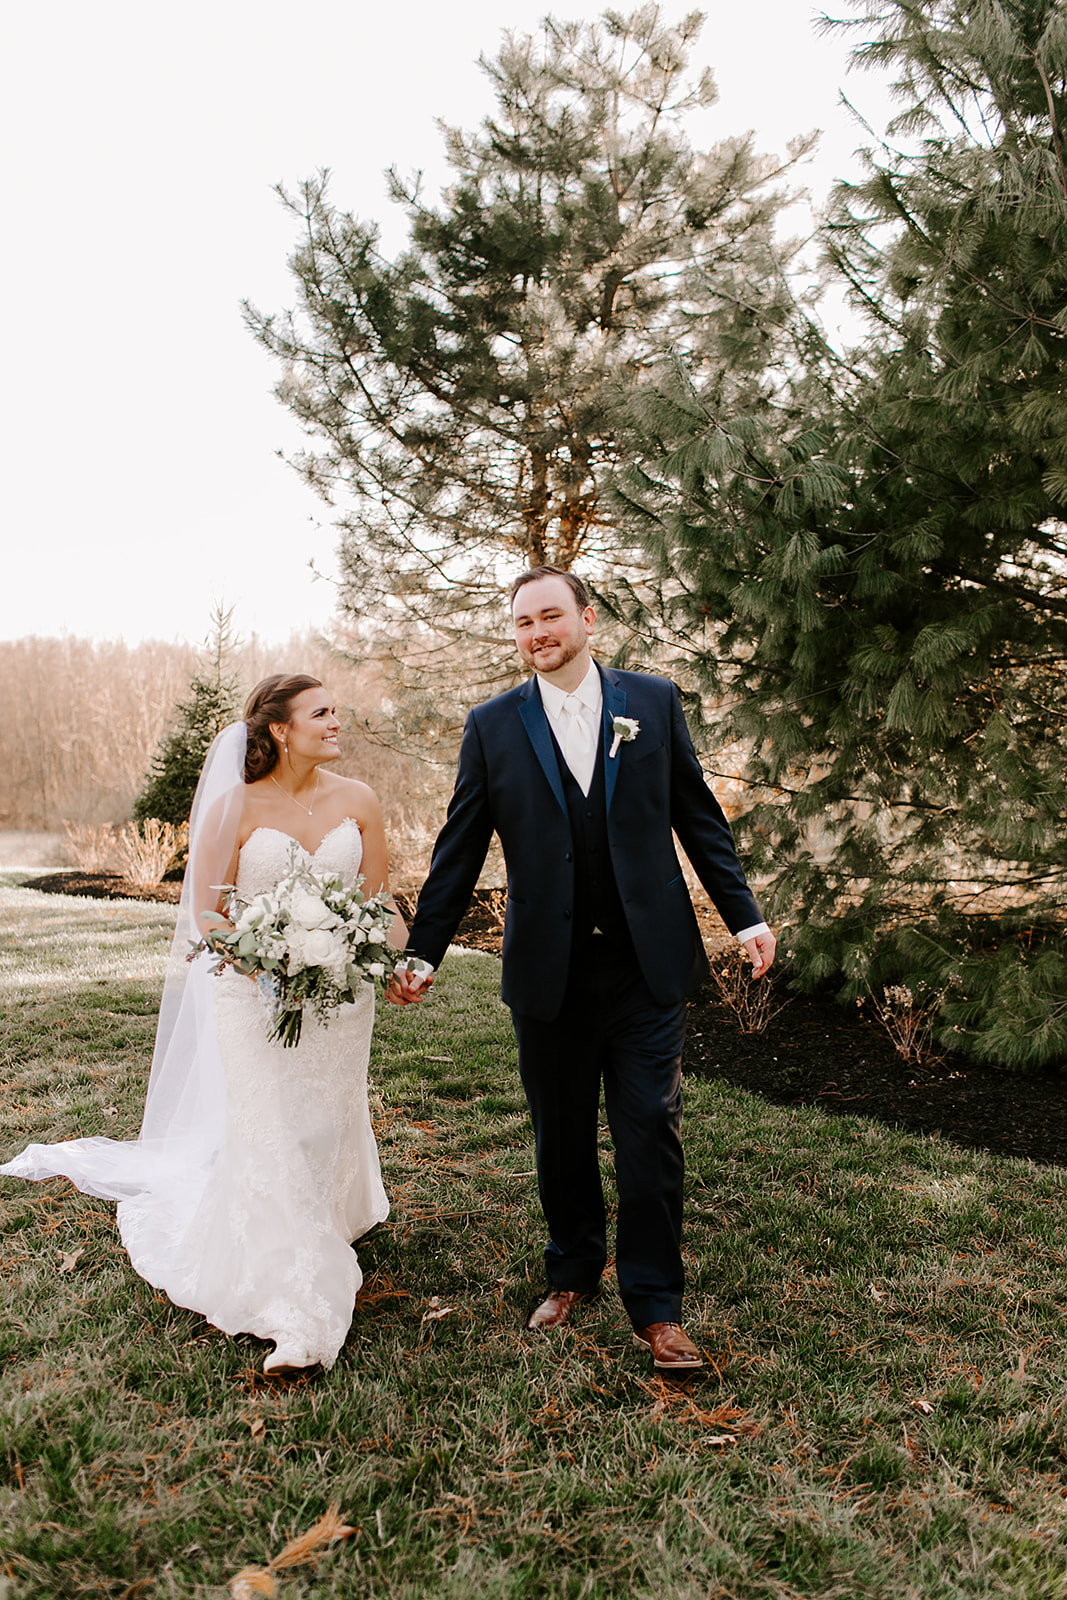 Lauren_and_Andrew_Mustard_Seed_Gardens_Noblesville_Indiana_by_Emily_Wehner_Photography-693.jpg